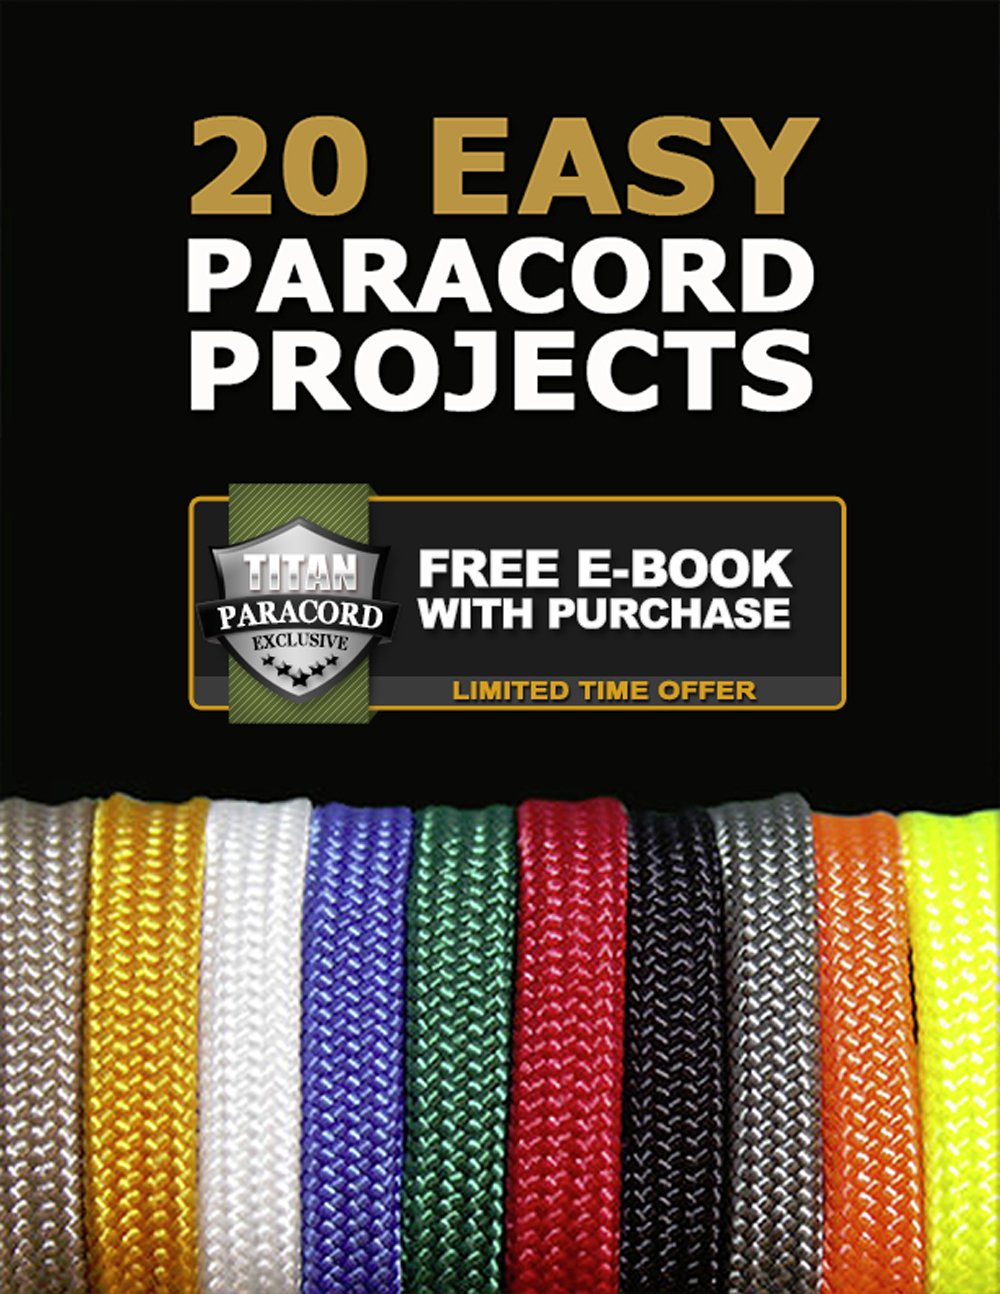 Titan SurvivorCord | Snakeskin | 103 Feet | Patented Military Type III 550 Paracord/Parachute Cord (3/16'' Diameter) with Integrated Fishing Line, Fire-Starter, and Utility Wire. by Titan Paracord (Image #9)